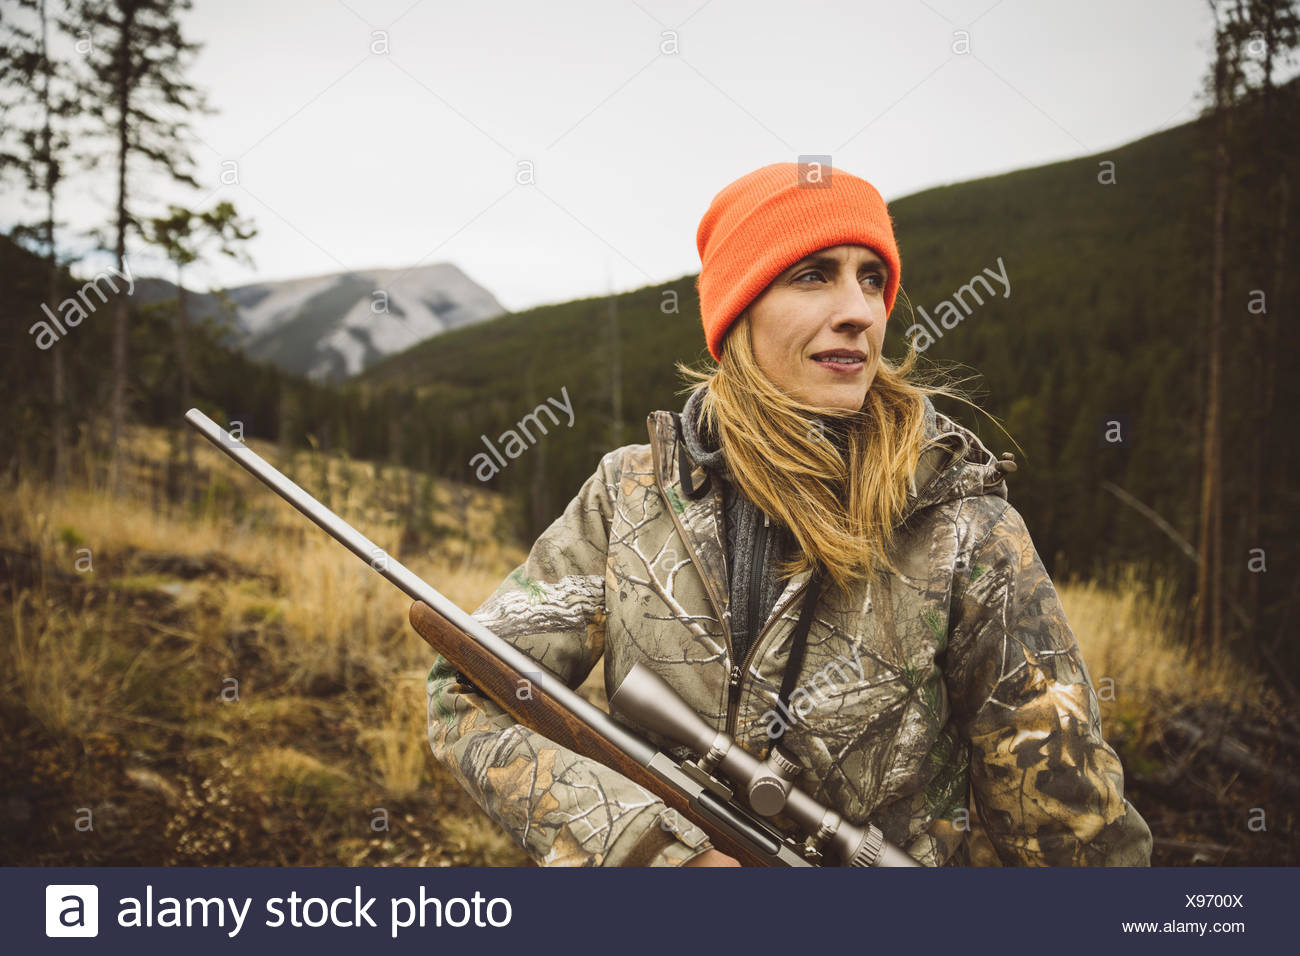 b729e8779d1 Portrait female hunter in camouflage and orange beanie holding hunting rifle  in field - Stock Image